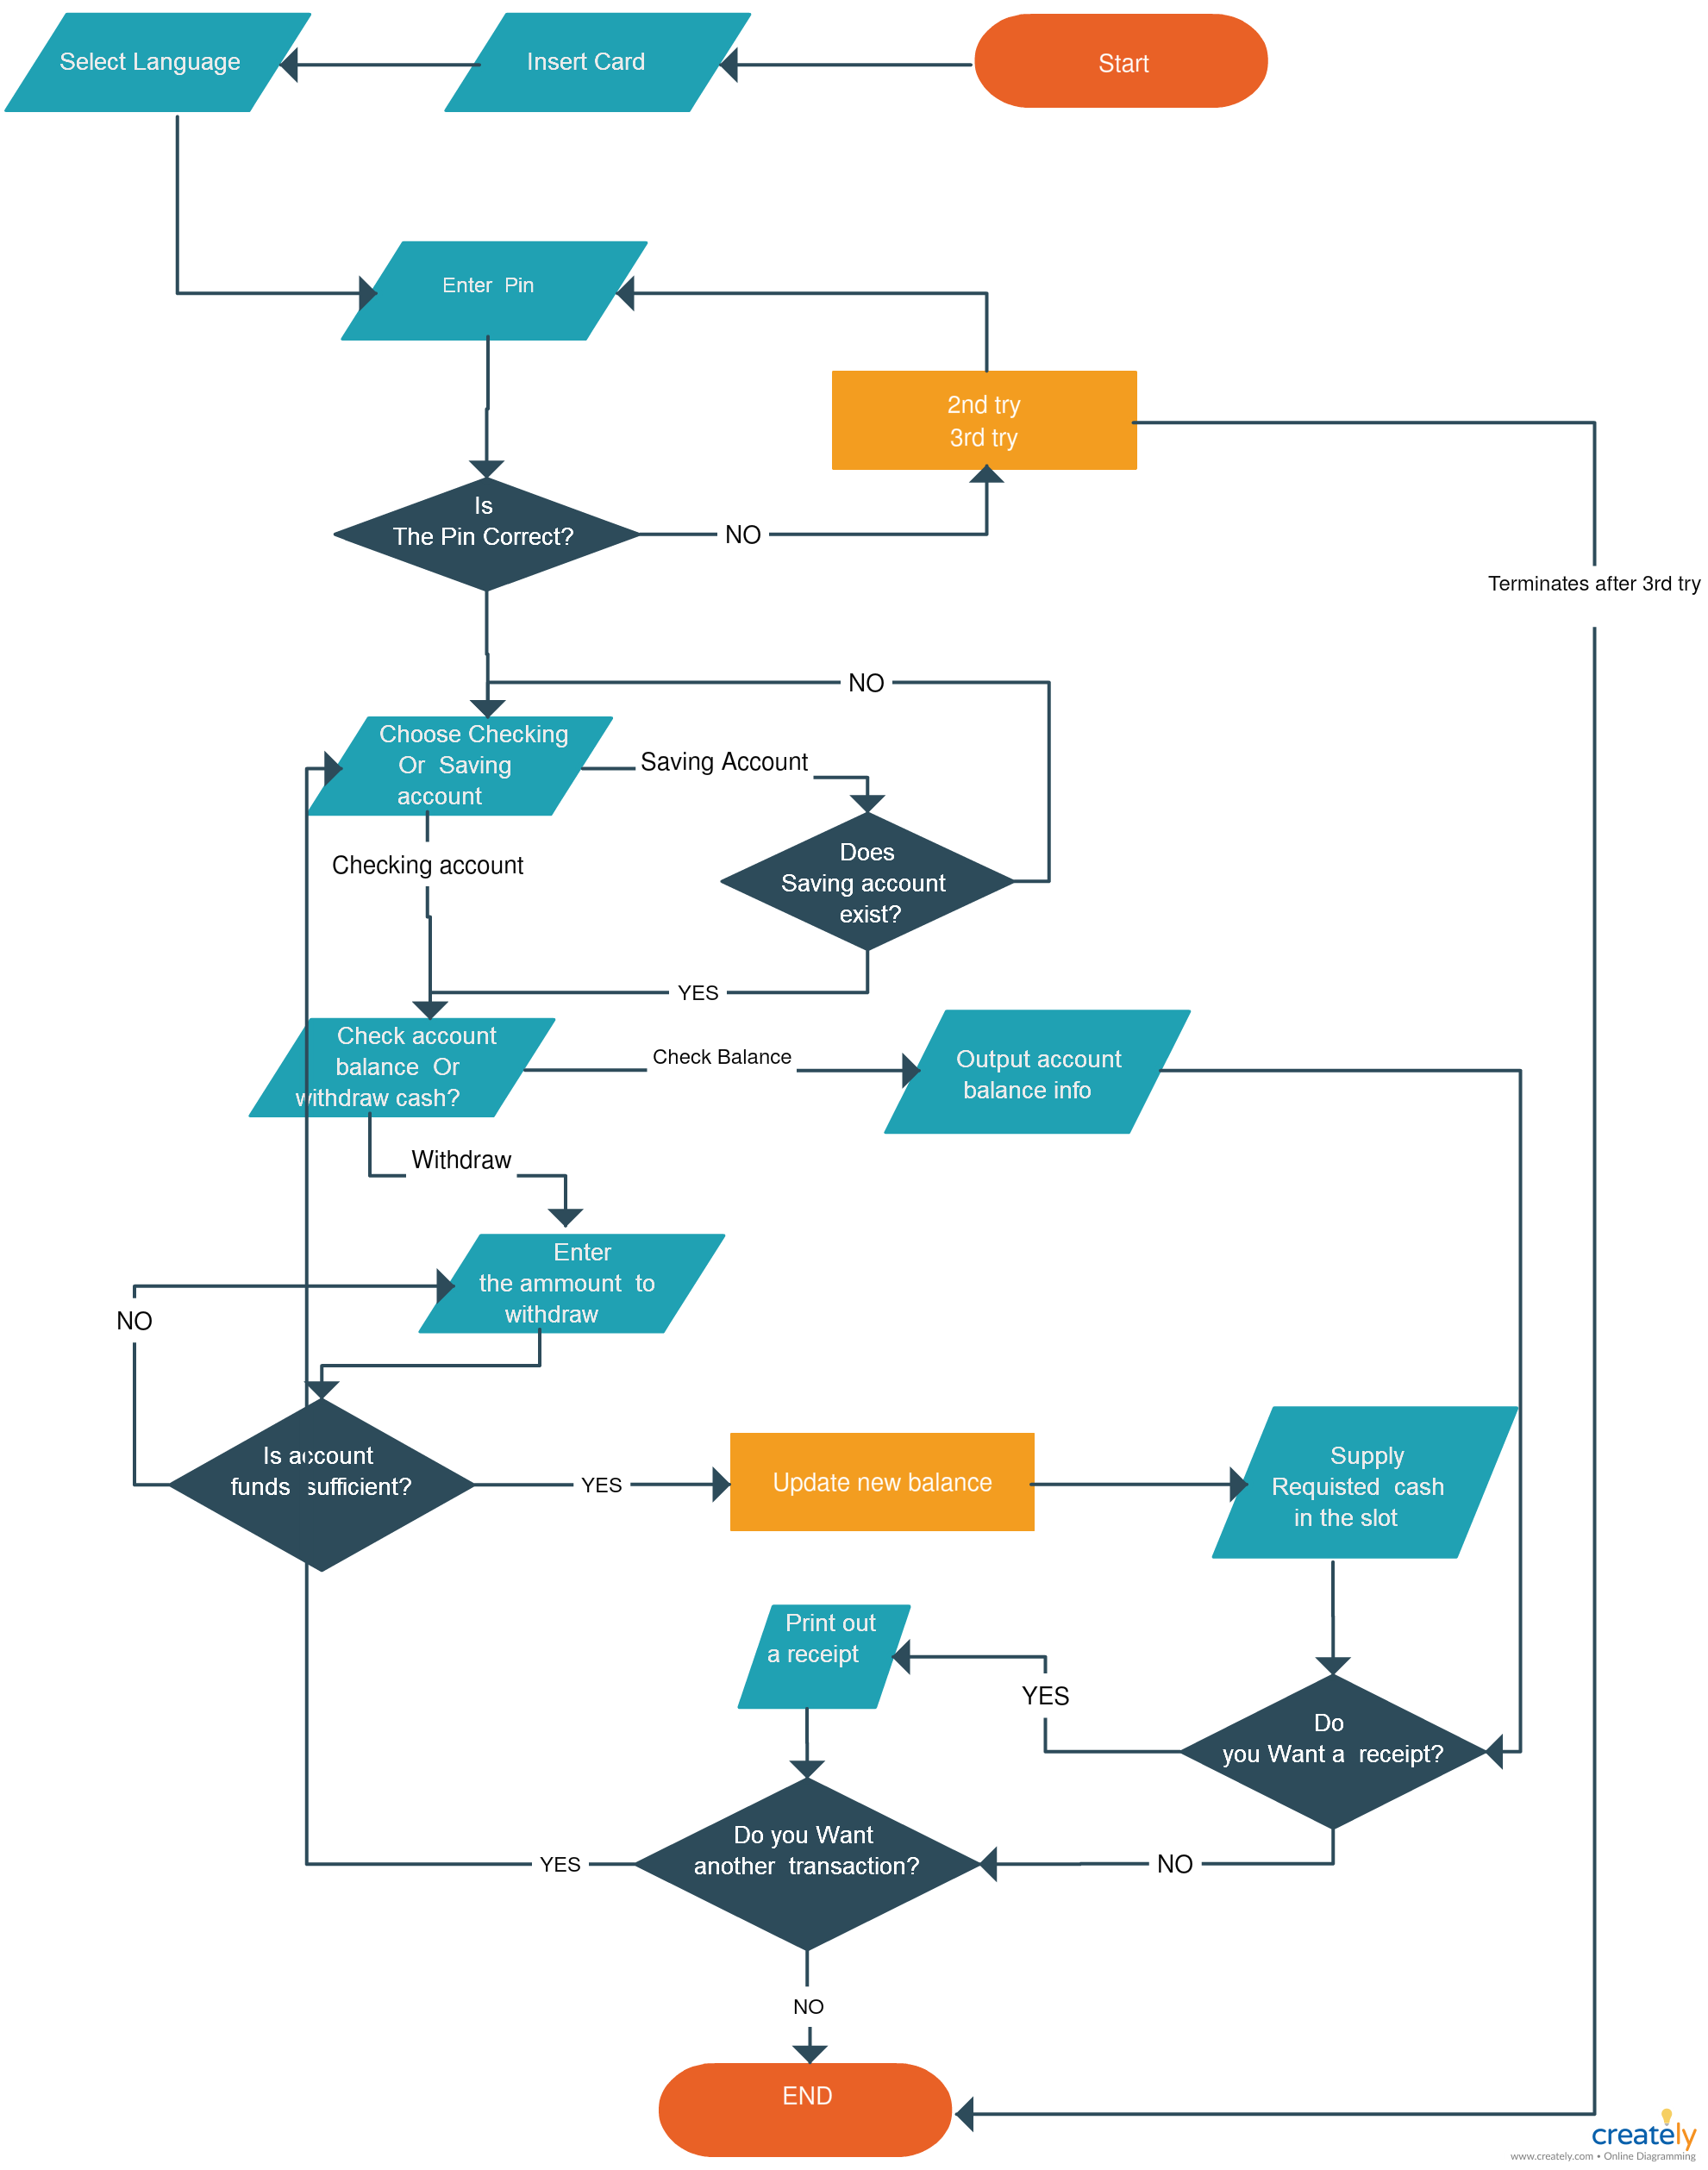 small resolution of atm flowchart atm flowchart illustrating the process flow of an atm machine atm process flowchart diagram is a great way to layout each segment of the